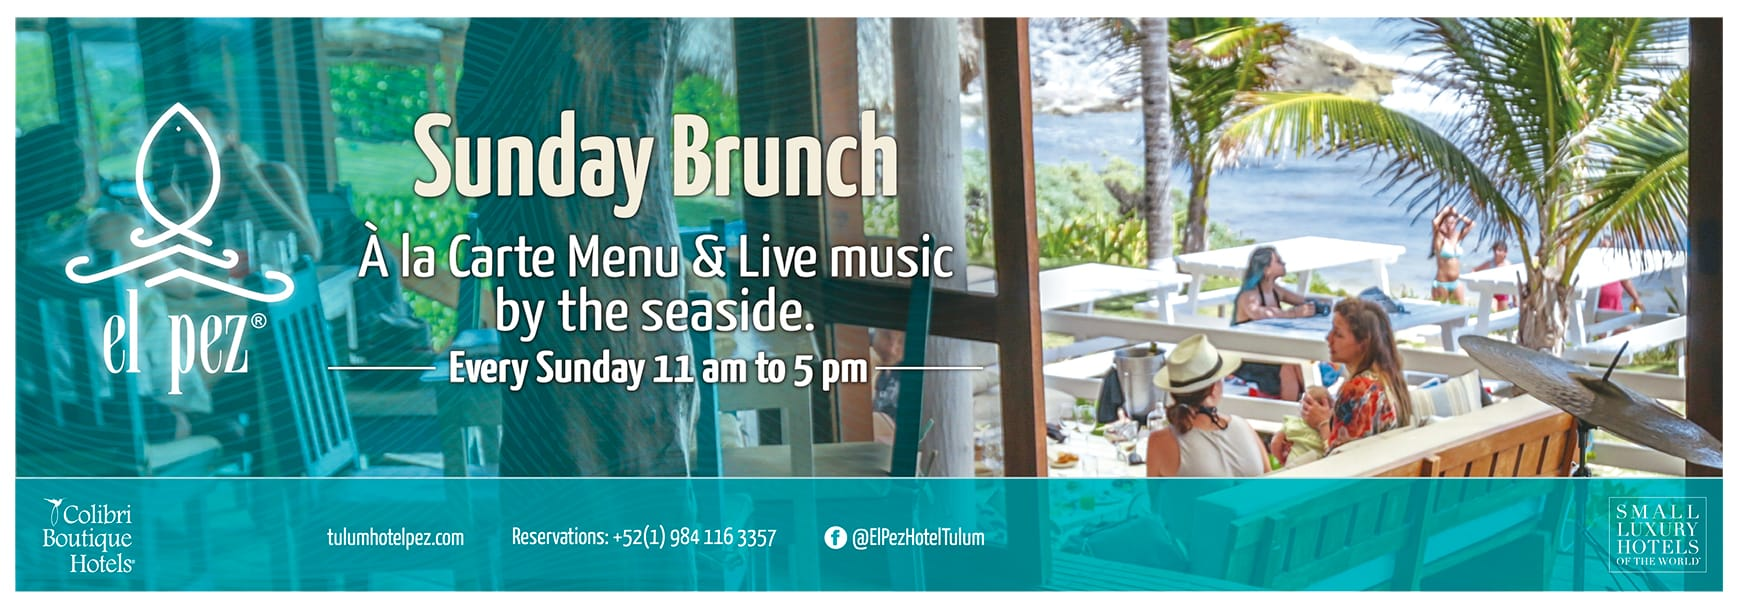 el-pez-Sunday-Brunch-colibri-hotels-tulum